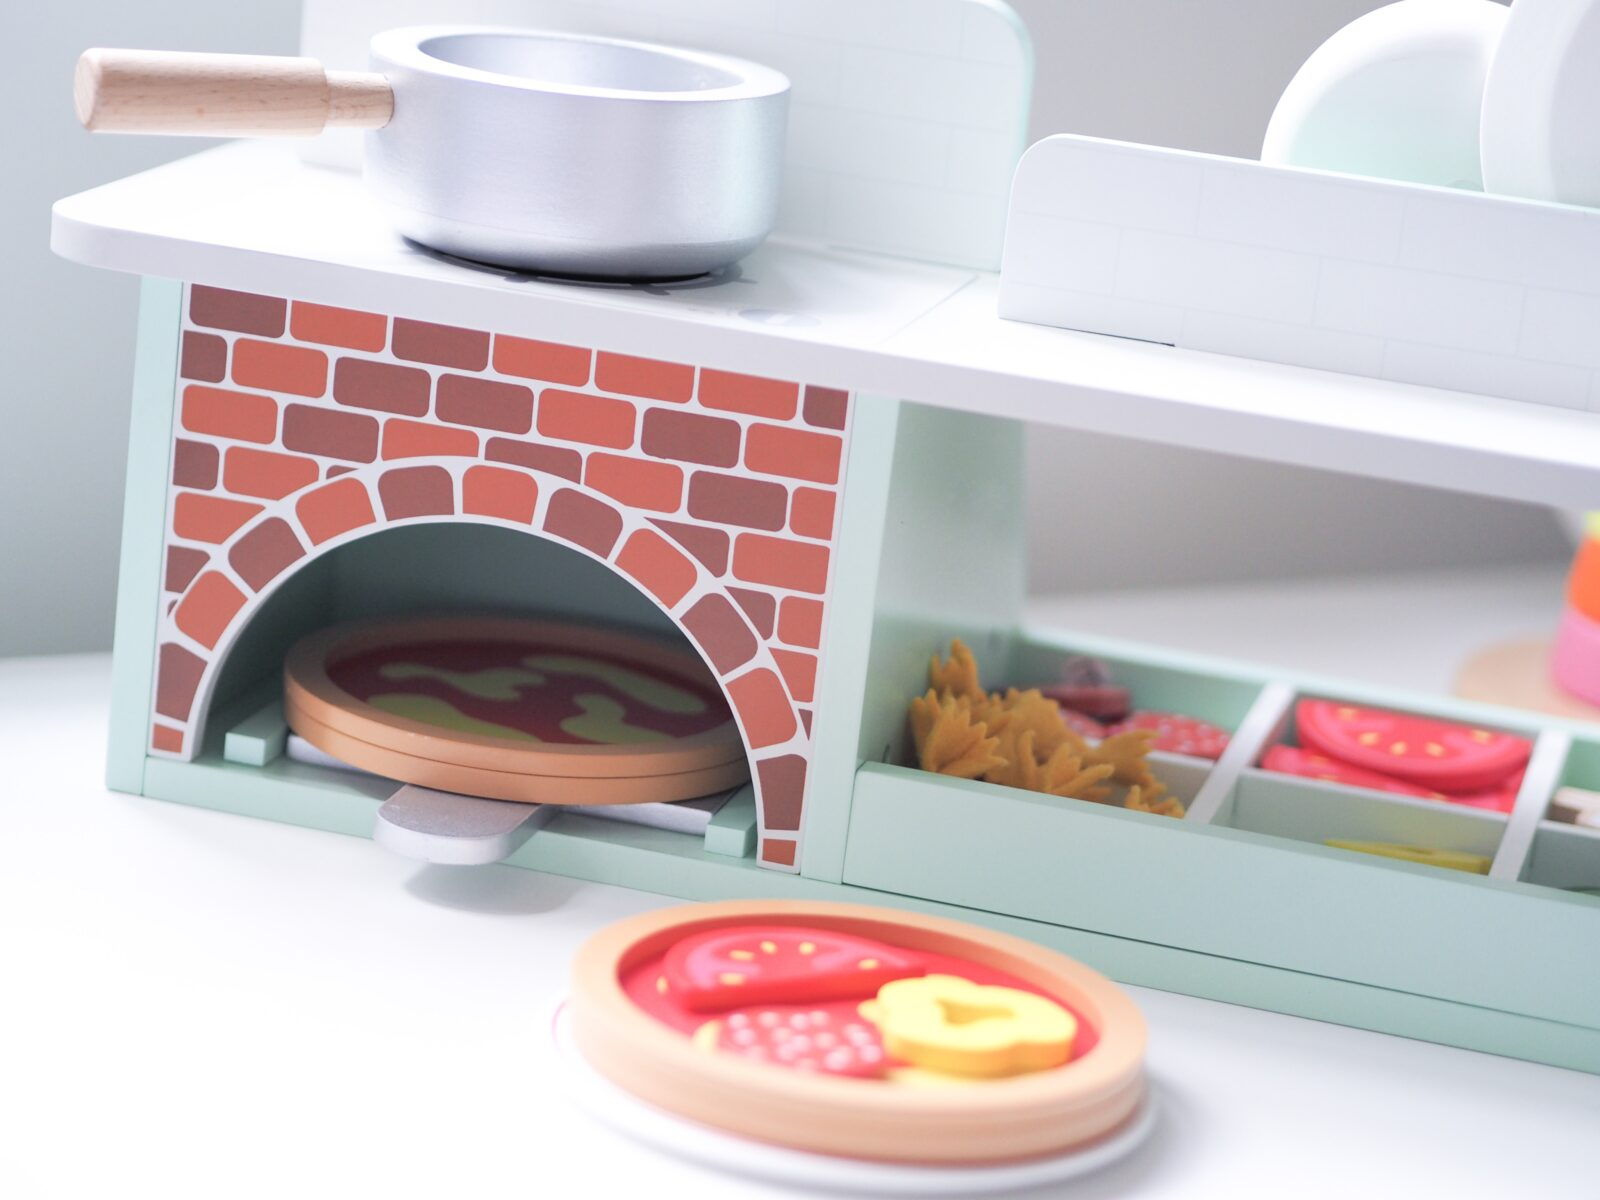 Role playing and pizza-making with the new Piccolo Play Café